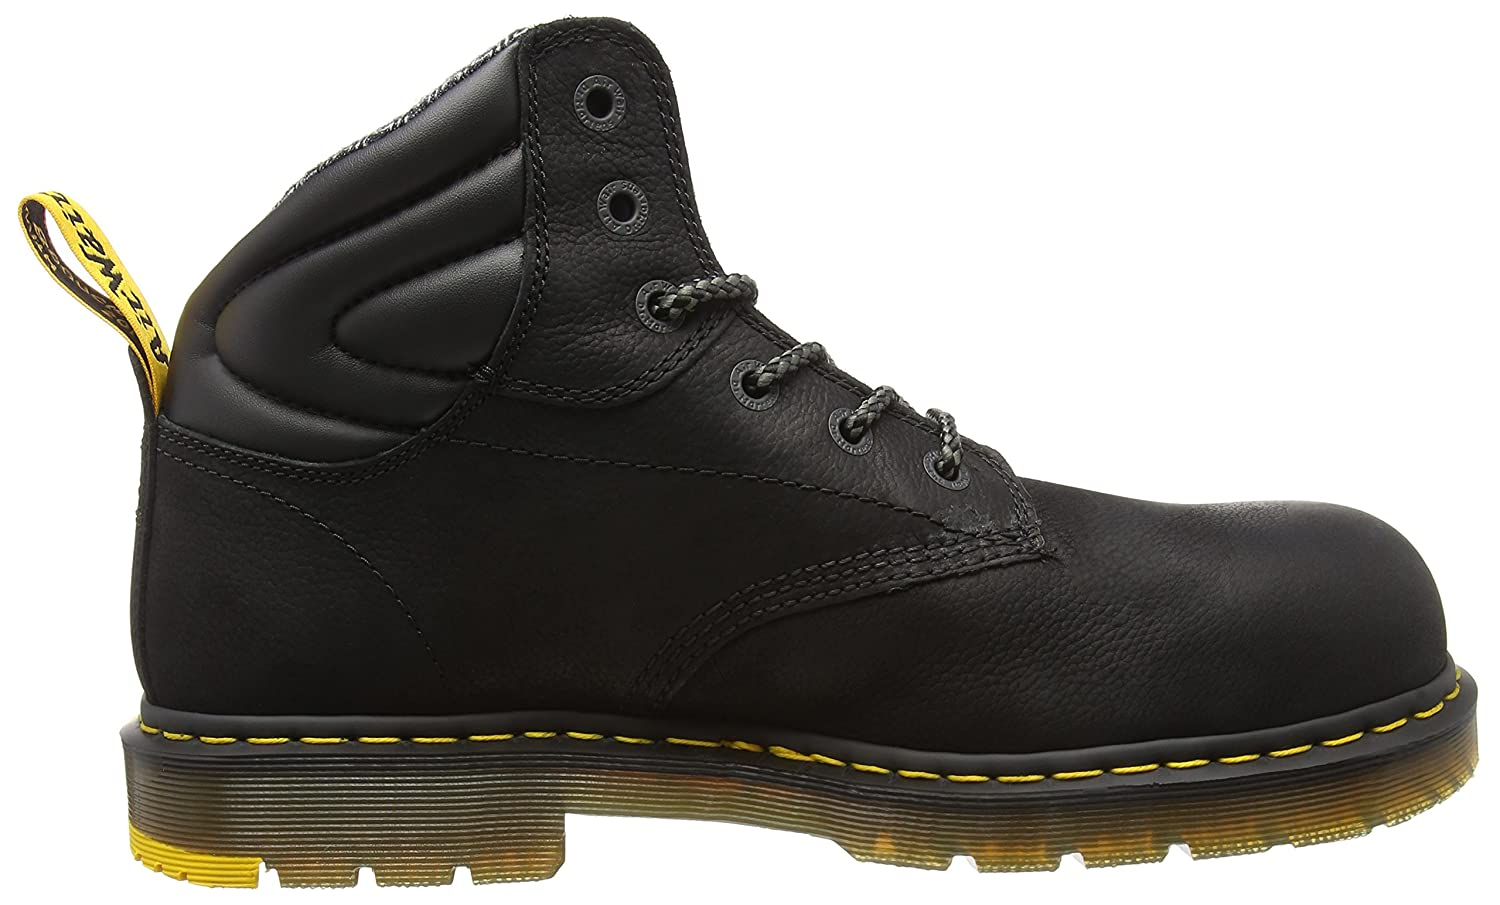 2b1903d461f190 Dr. Martens Unisex Adults' Hynine St Safety Shoes: Amazon.co.uk: Shoes &  Bags